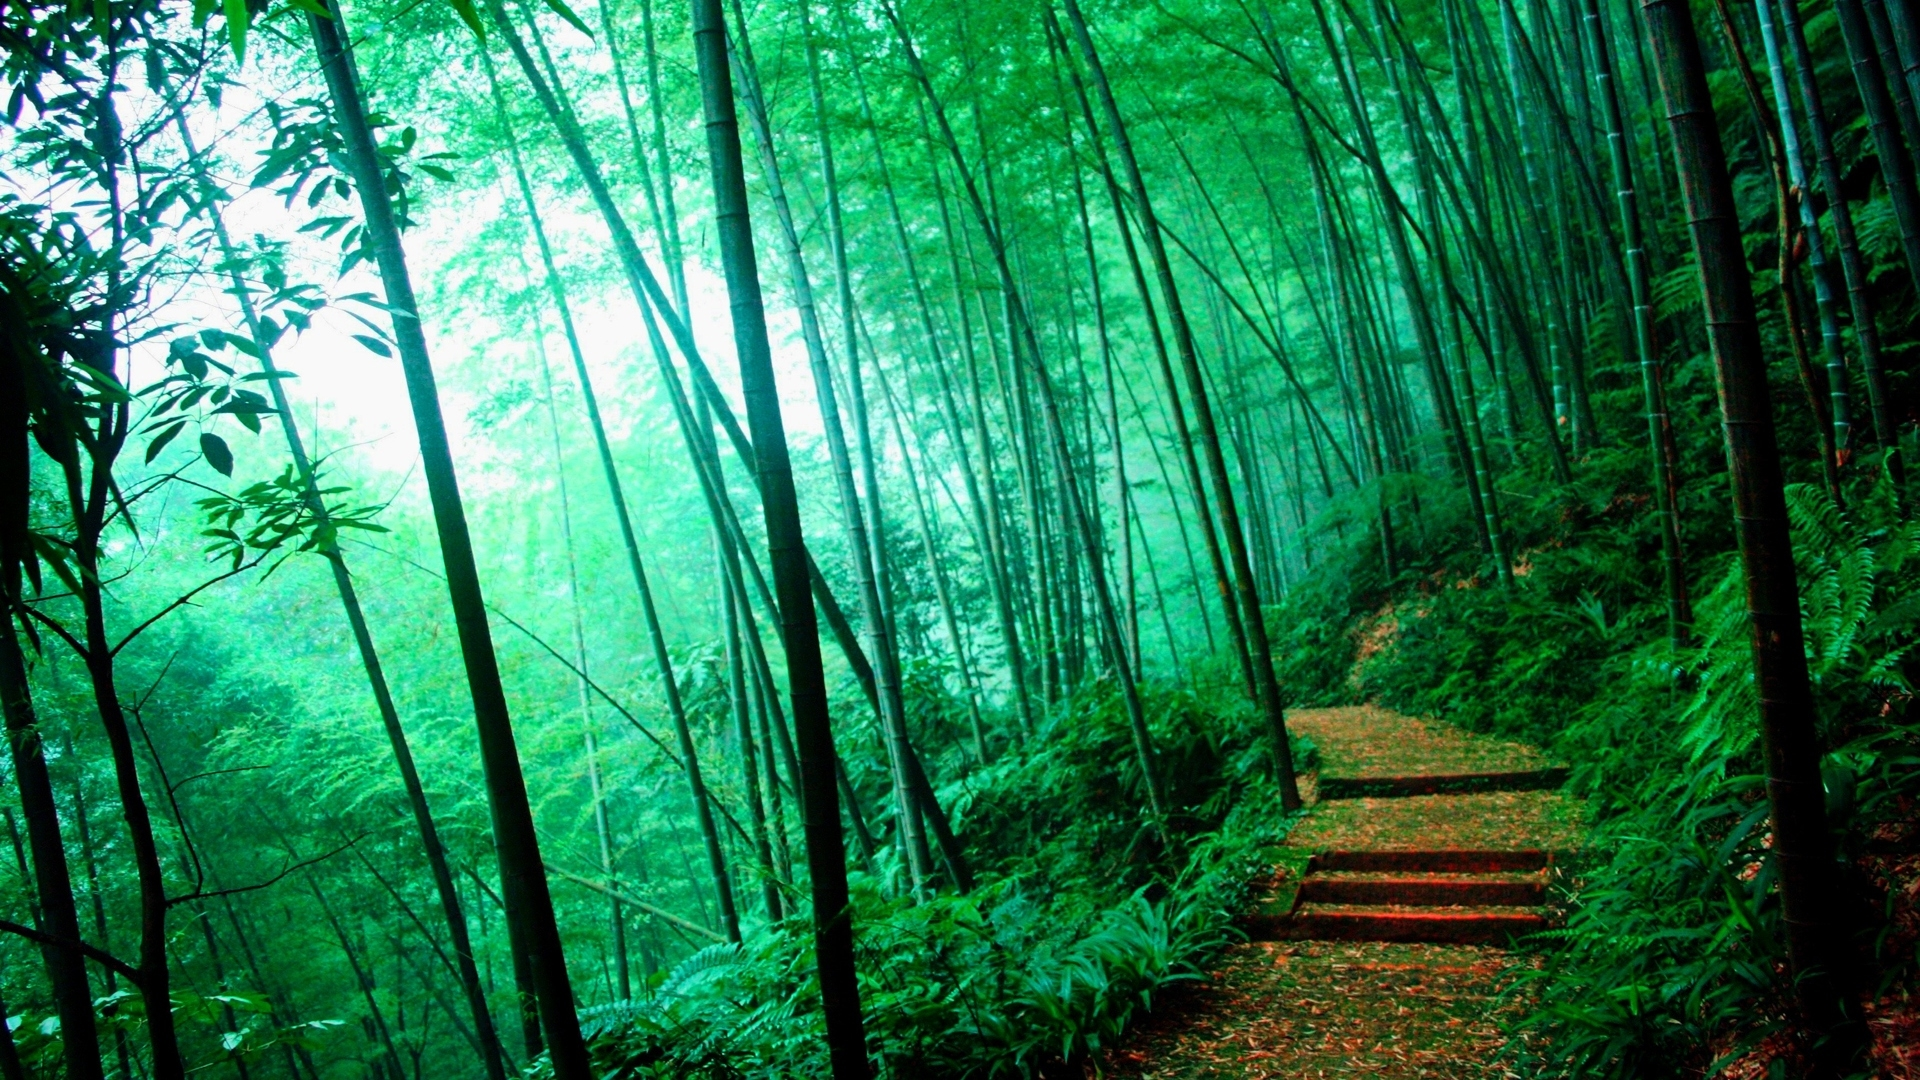 New Year Wallpapers 3d Bamboo Forest Hd Wallpaper Pixelstalk Net